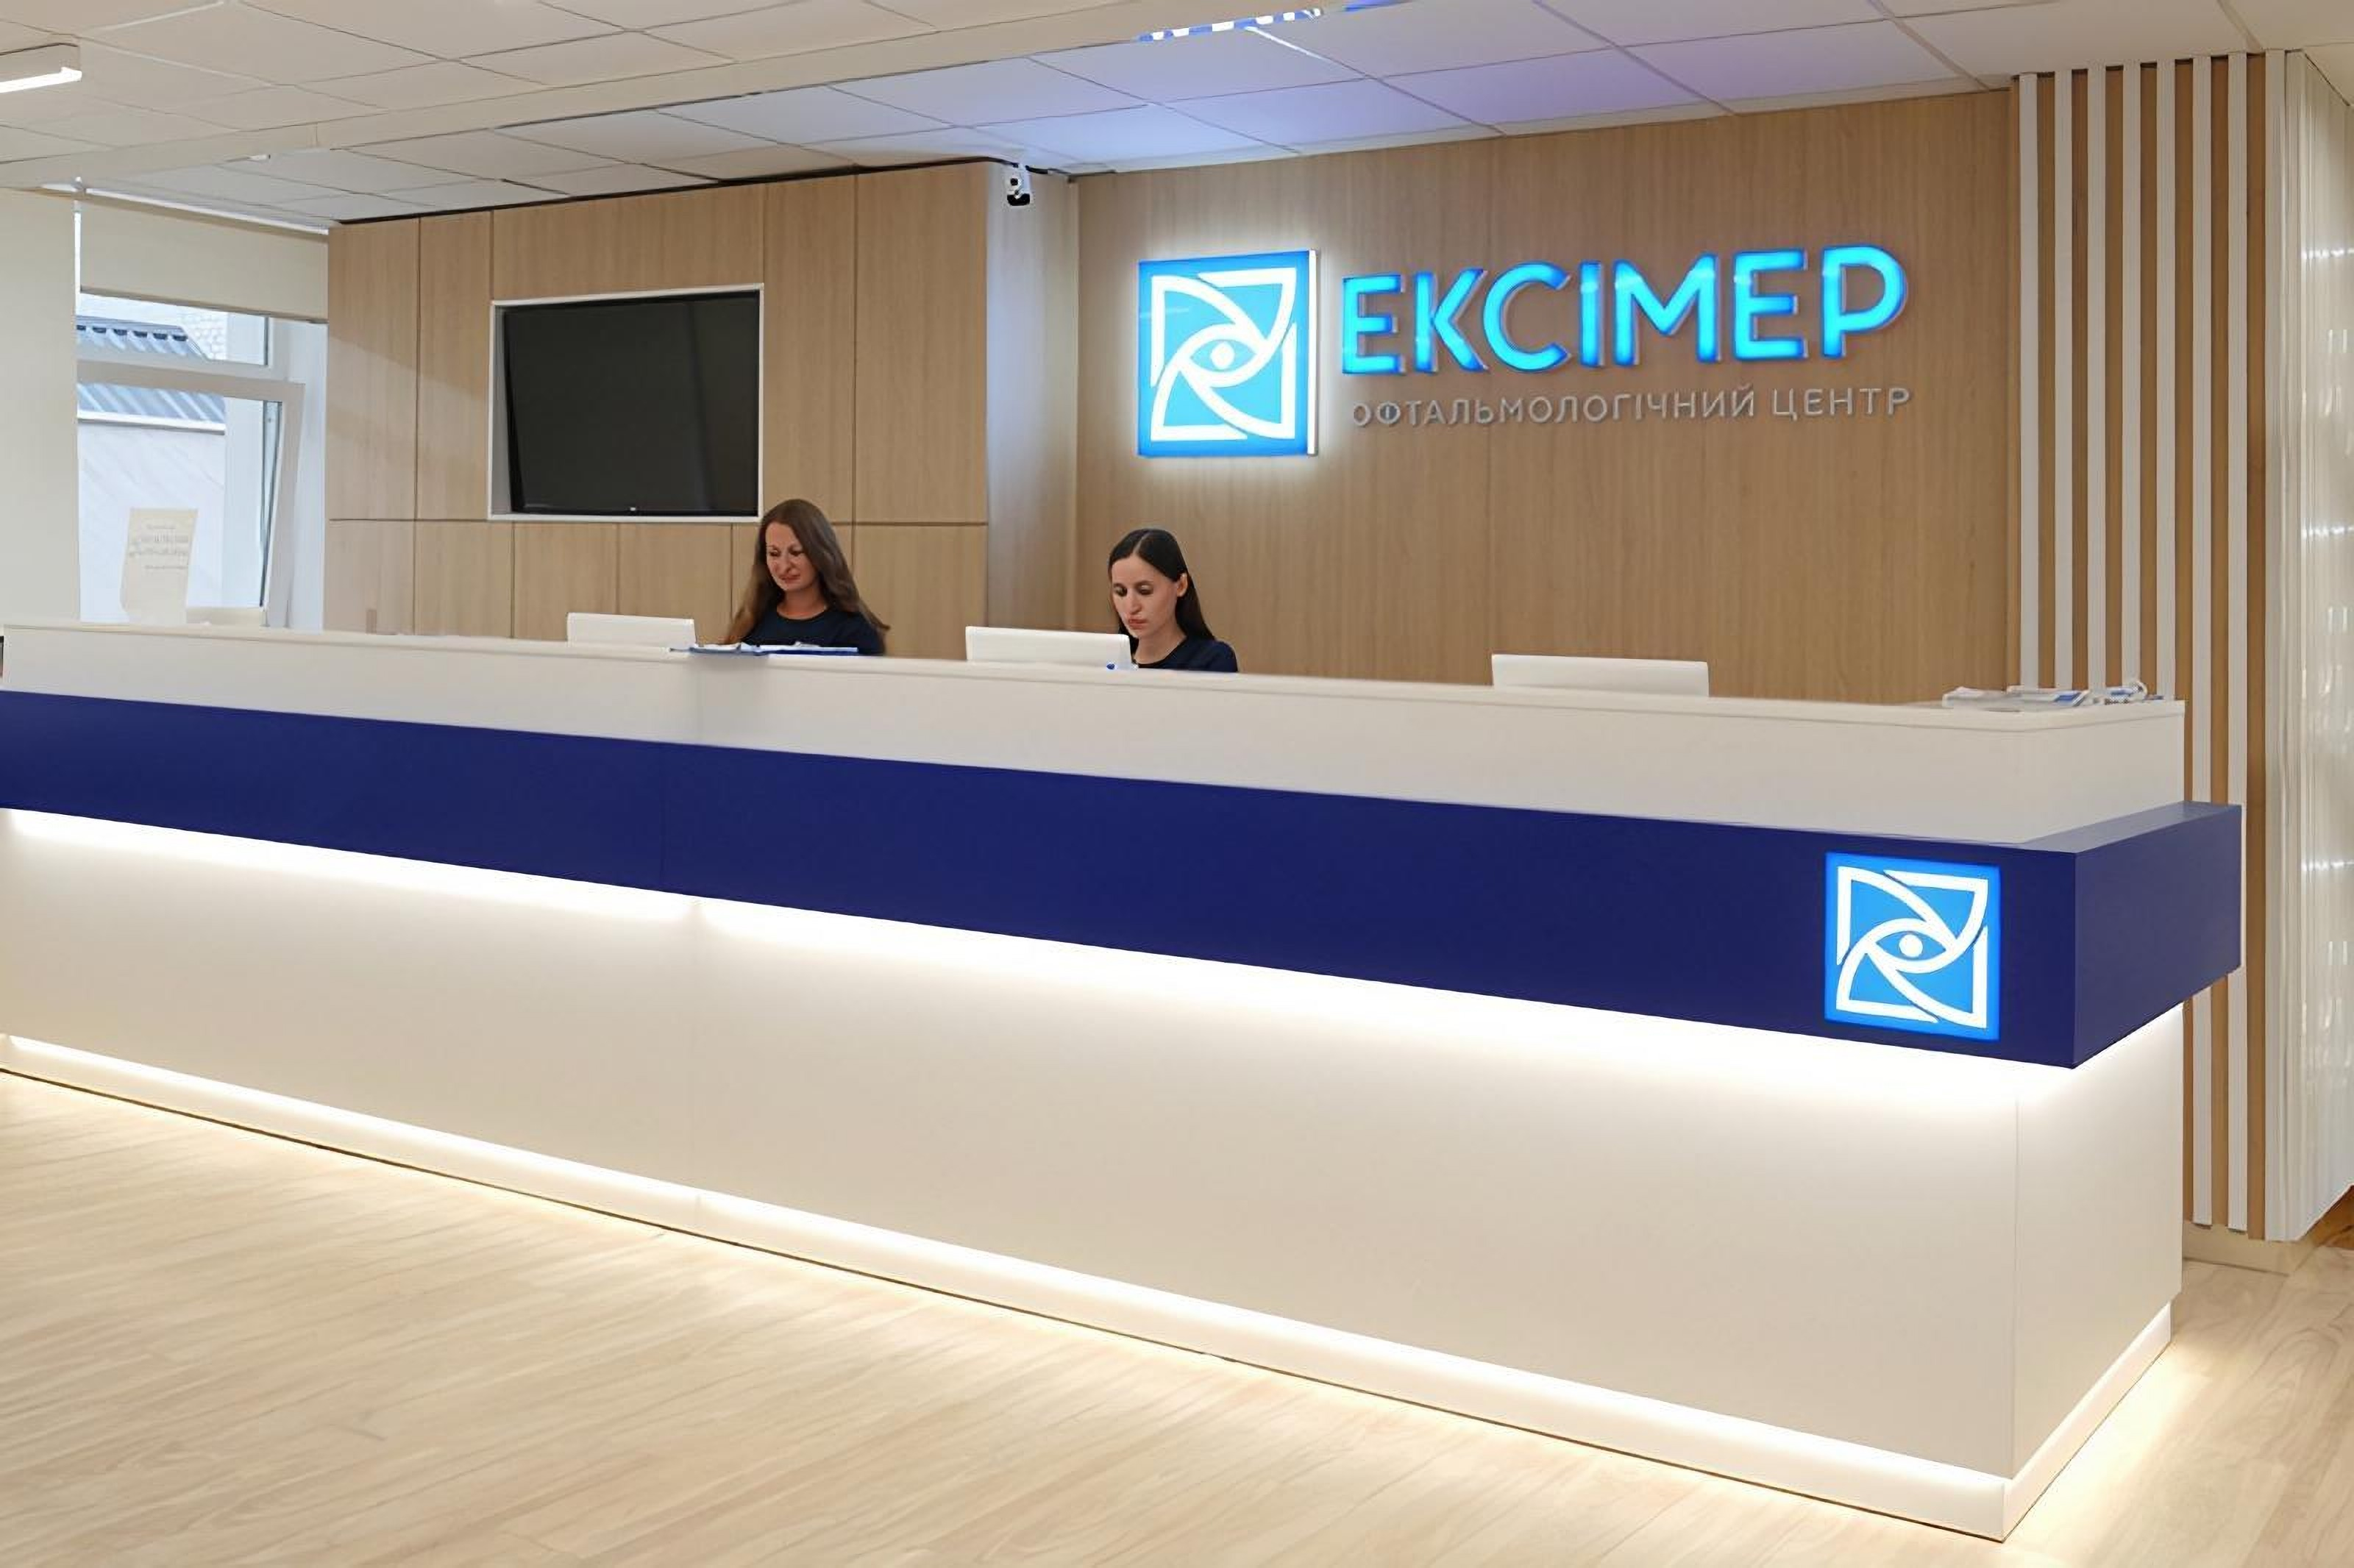 Reception desk at the Excimer Clinic in Odessa